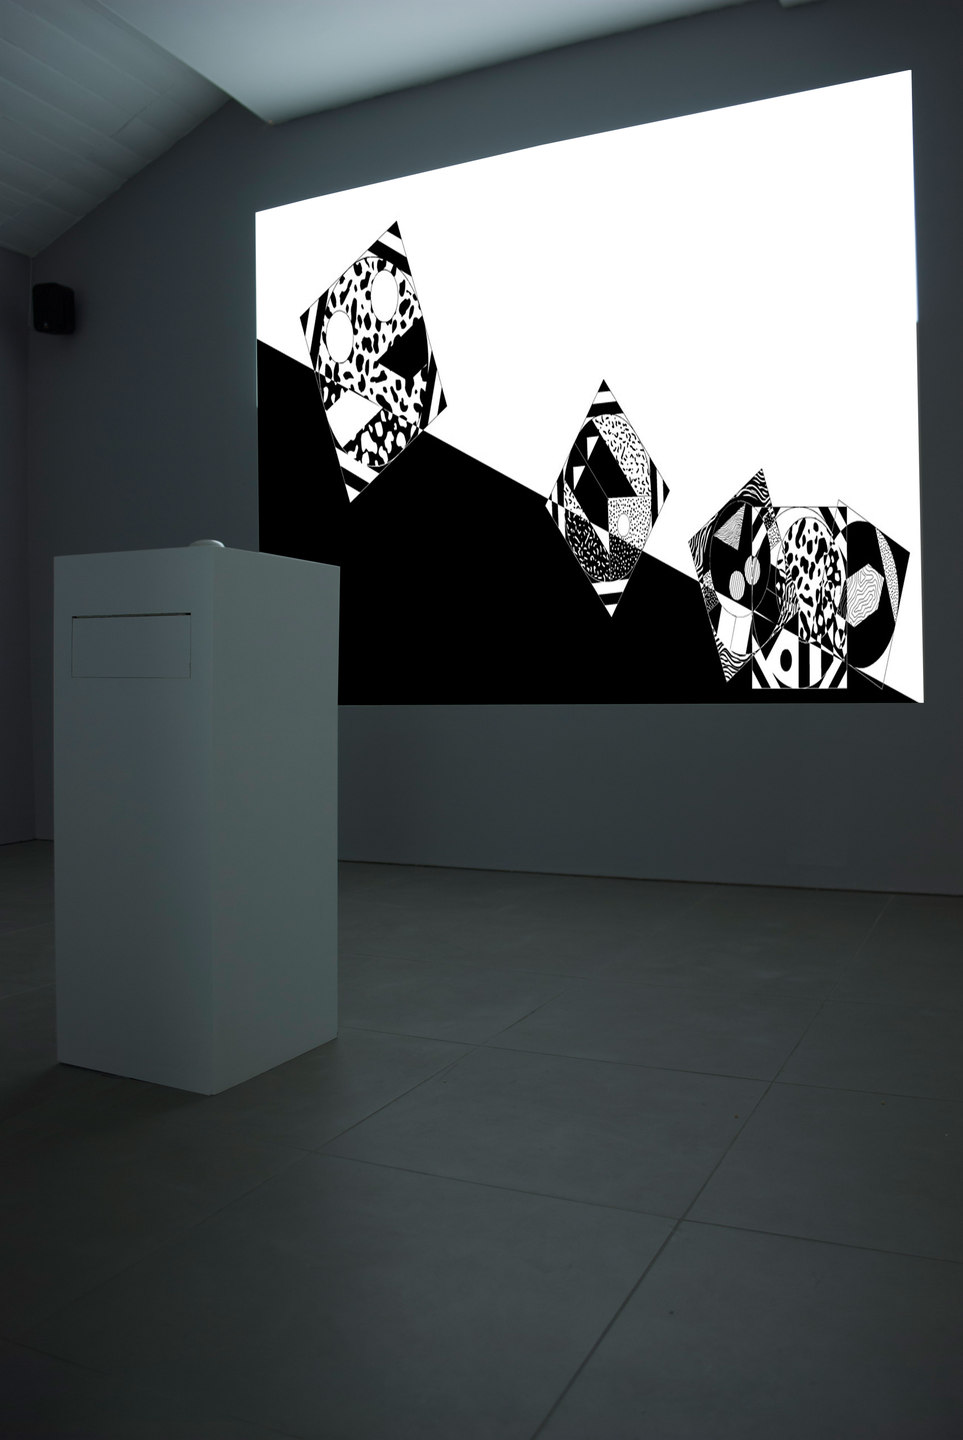 Angelo Plessas, Twilight Of The Idols, 'HorizonOfResemblance.com', 2012, mdf, digital projection, website http://horizonofresemblance.com, Cell Project Space